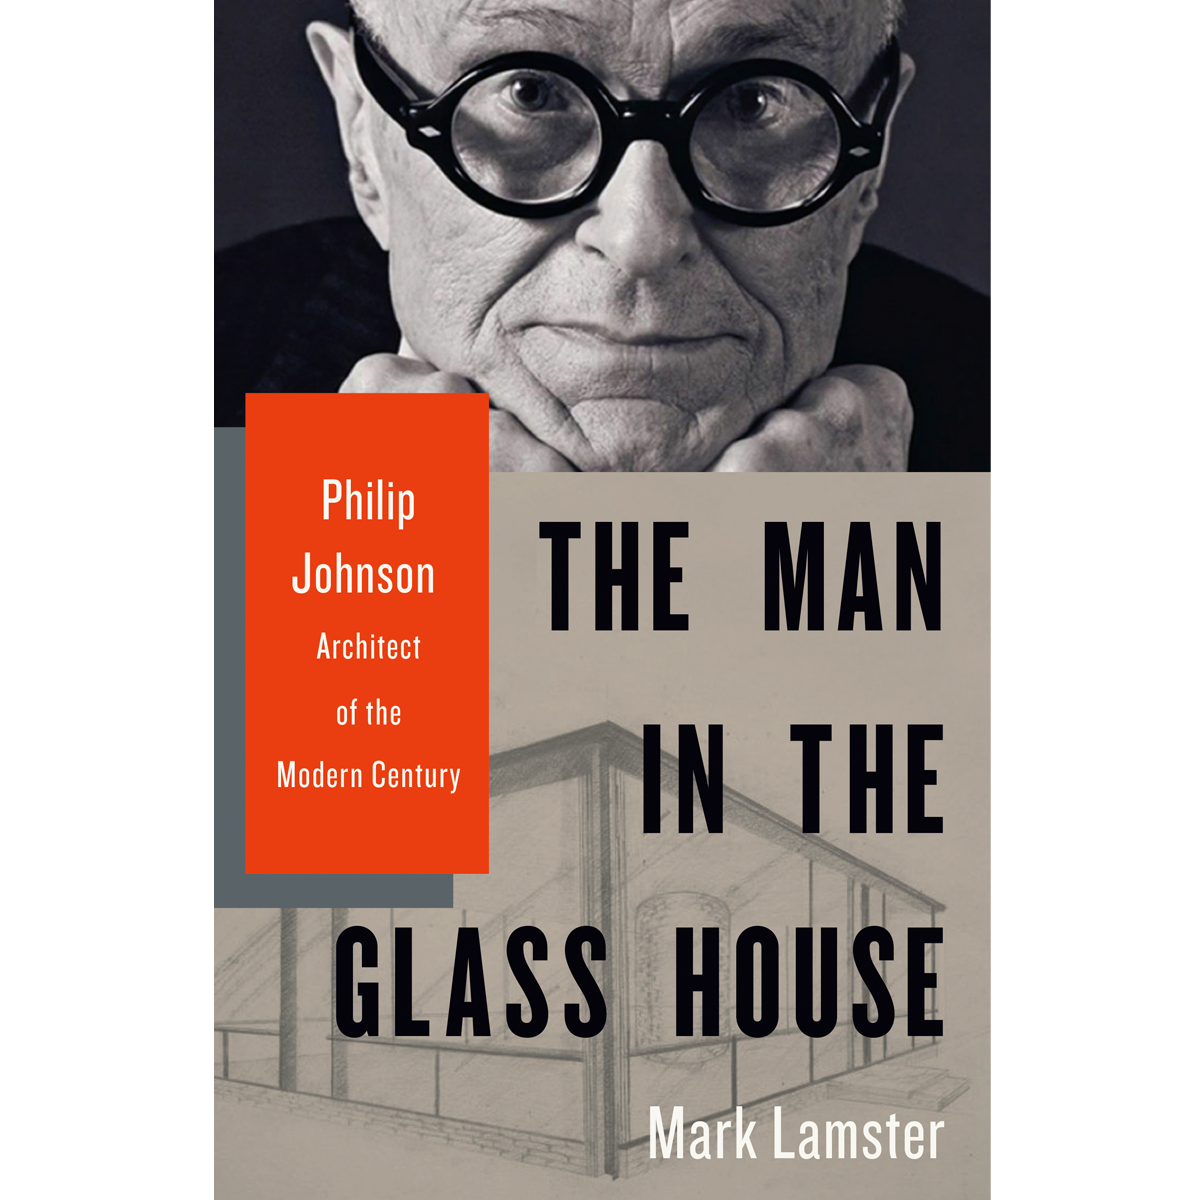 The Man in the Glass House